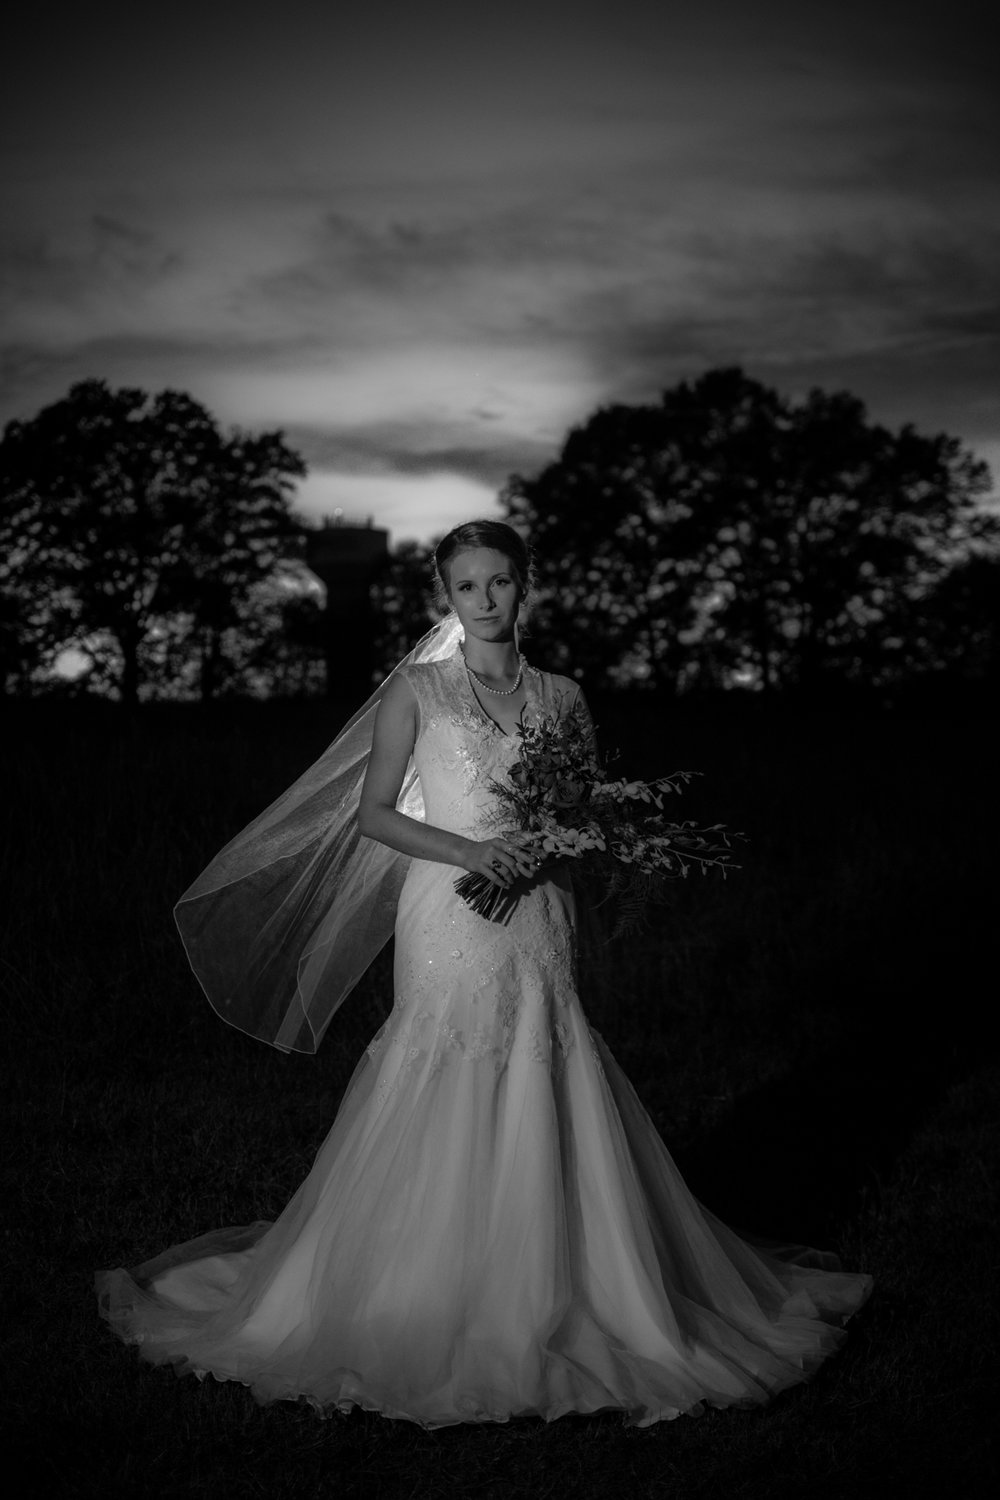 bridalportraits (49 of 49).JPG